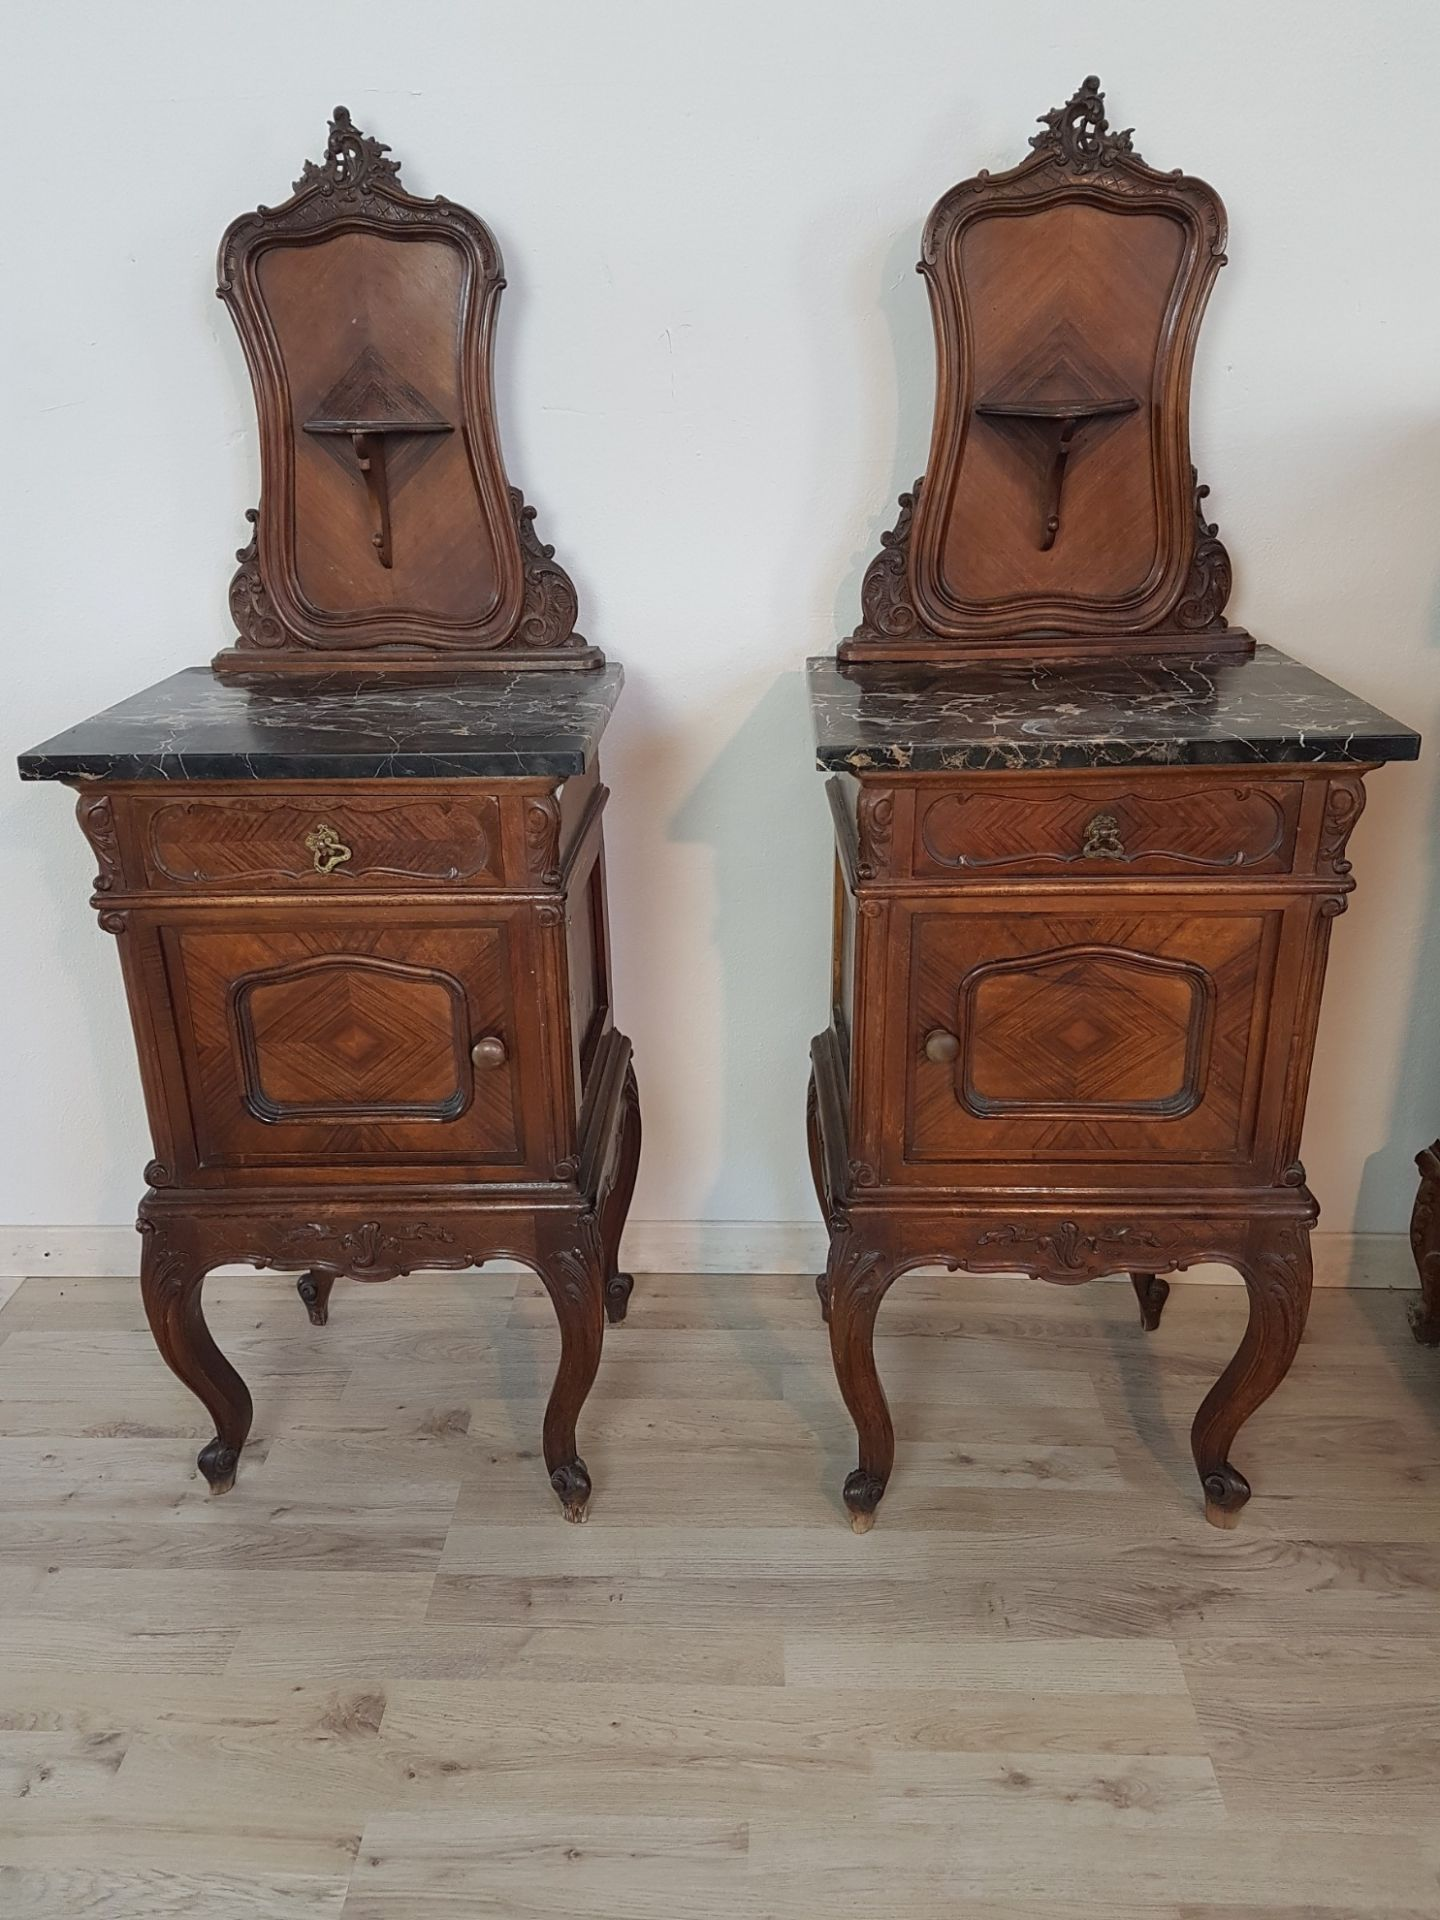 19th Century Italian Louis XV Rococò Style Wood Carved Luxury Bedroom Set